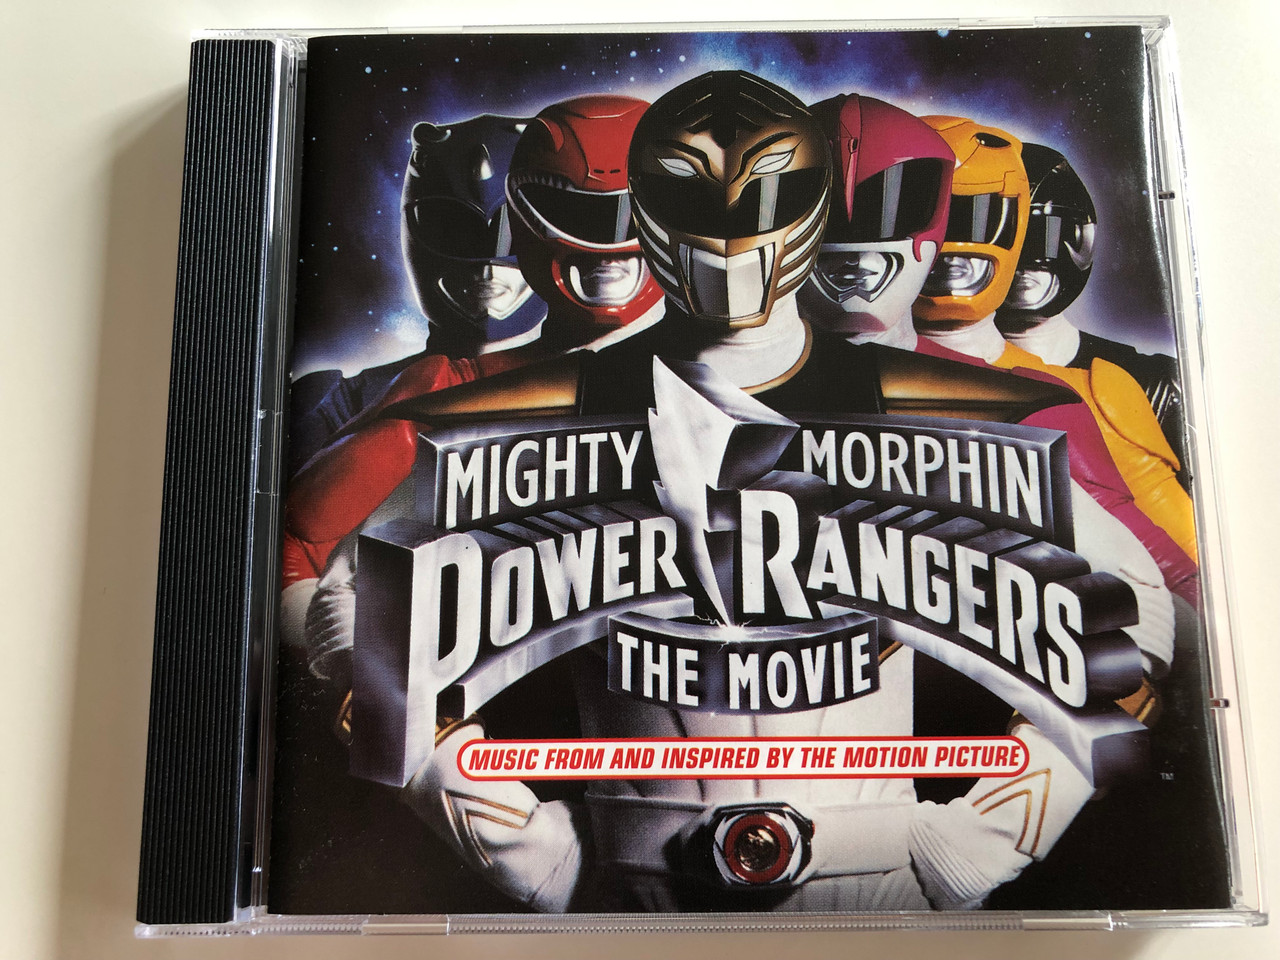 Mighty Morphin Power Rangers The Movie OST / Music from and inspired by the  motion picture / Red Hot Chili Peppers, Van Halen, Shampoo / Audio CD 1995